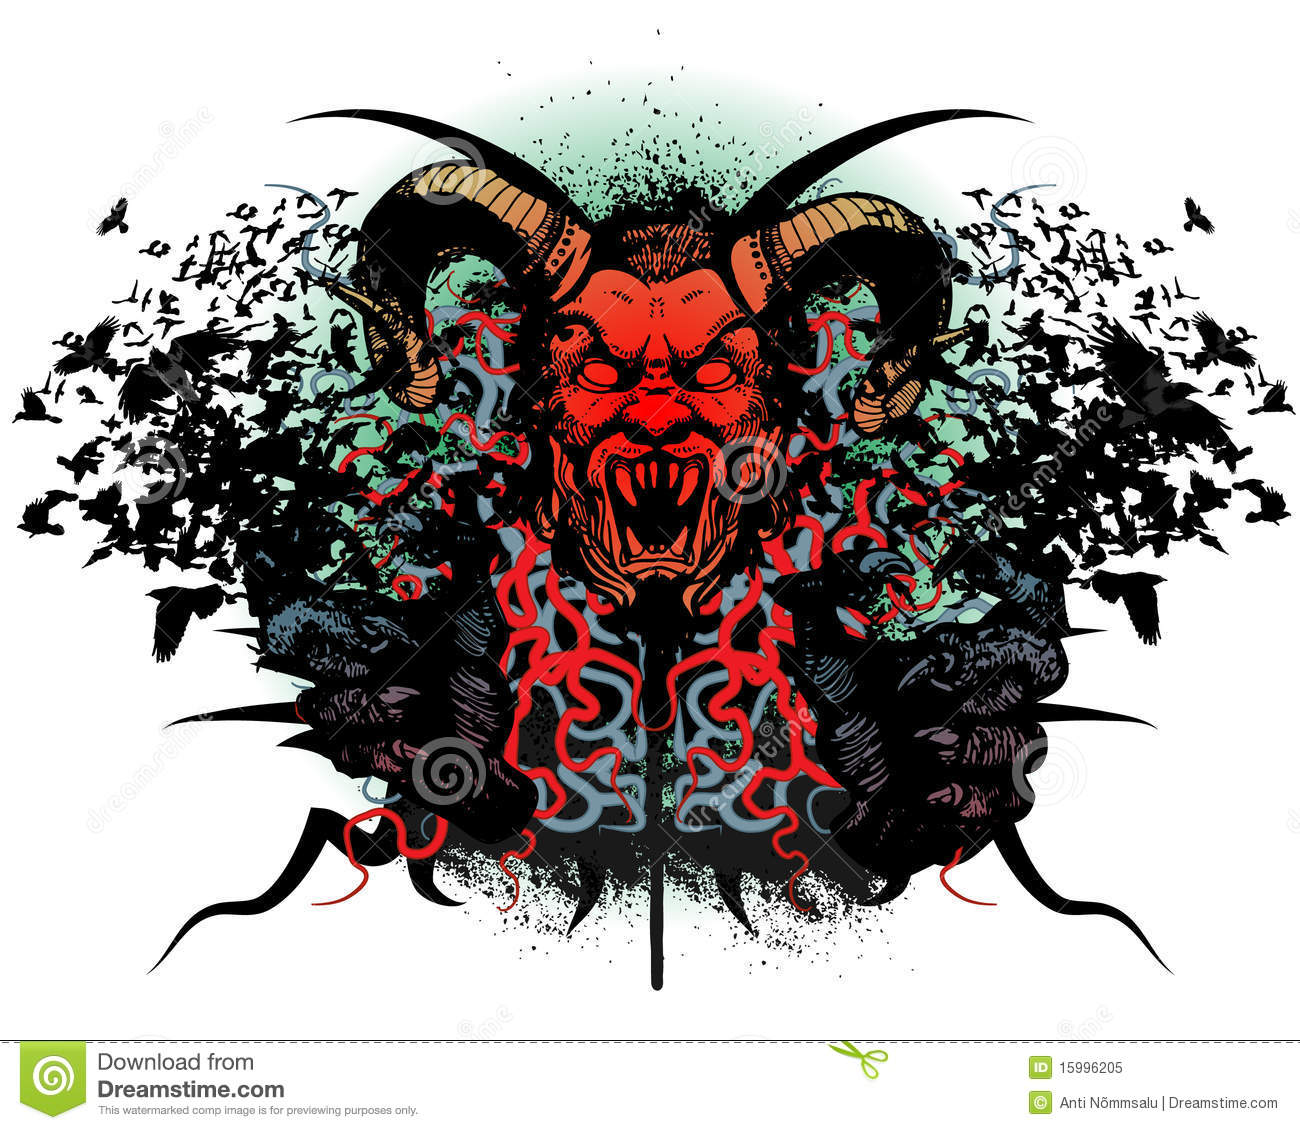 Design t shirt free - T Shirt Design With Monster Head Royalty Free Stock Photo